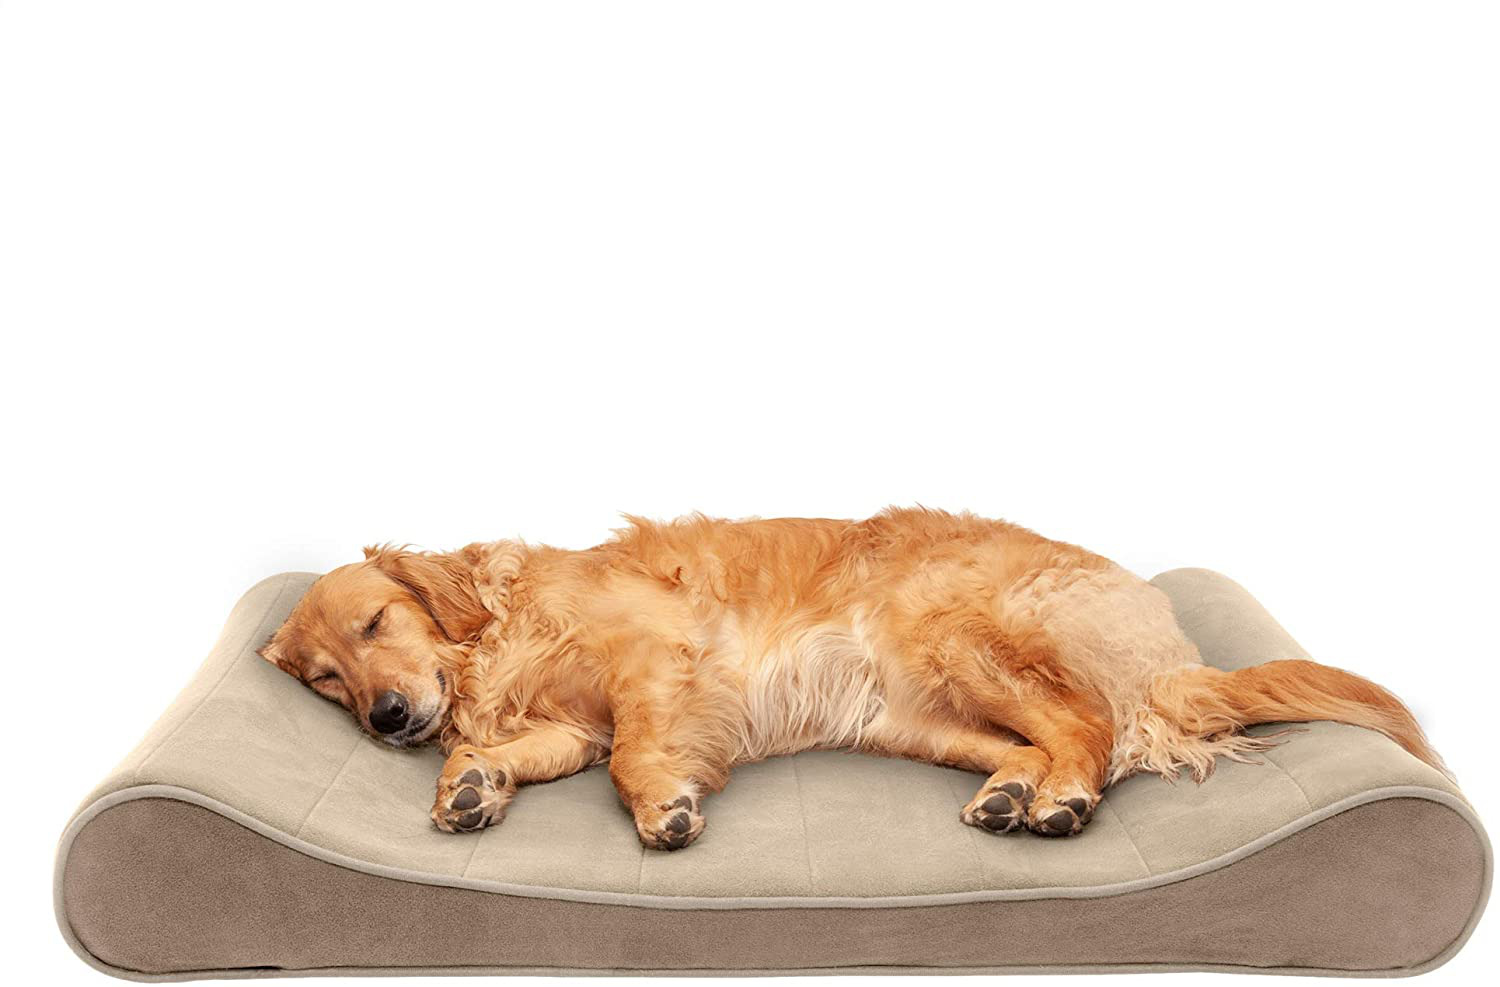 Furhaven Pet Dog Bed - Cooling Gel Memory Foam Faux Fleece and Chenille Soft Wov. Buy it now for 95.66